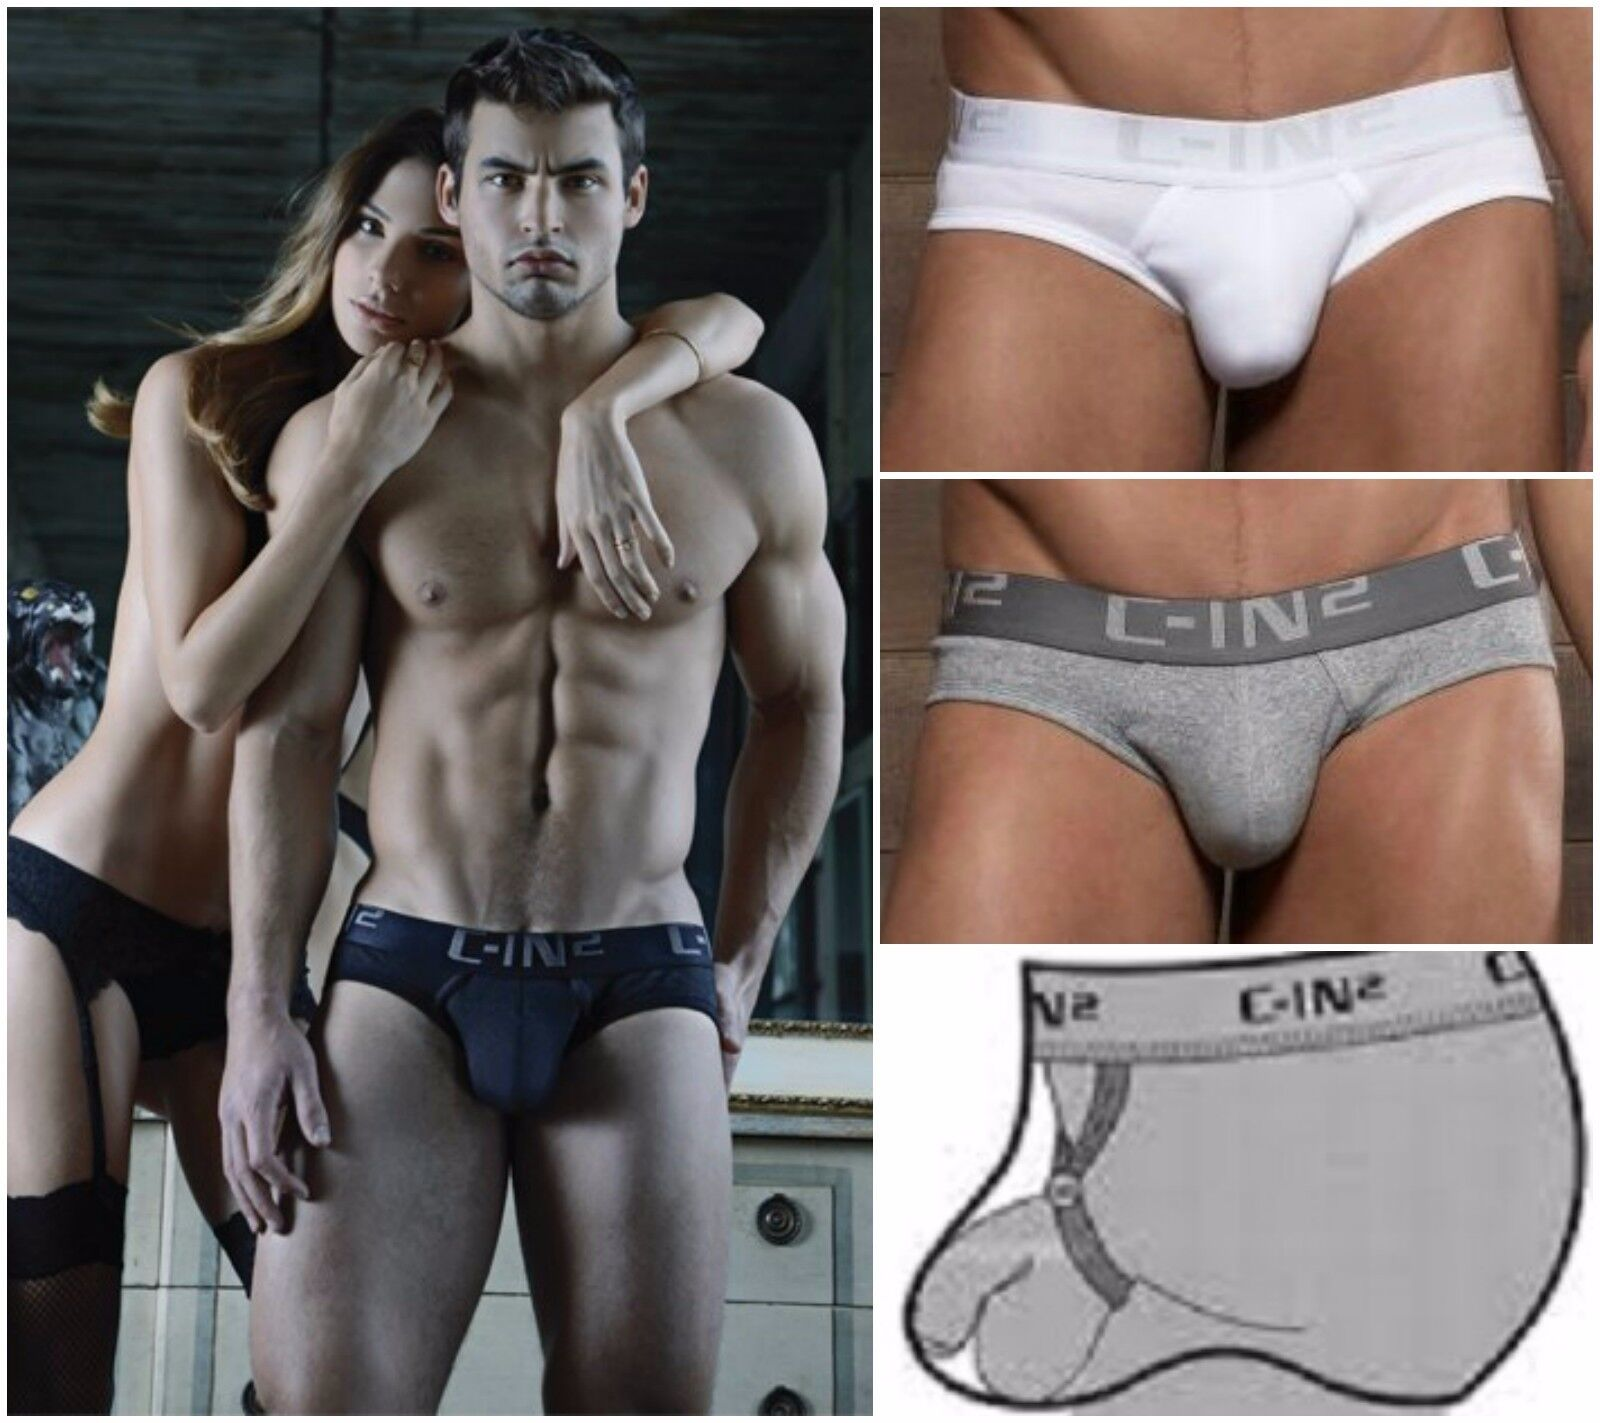 C-IN2 Brief Mens Underwear Core Gay/Guy FAST SHIPPING Size S